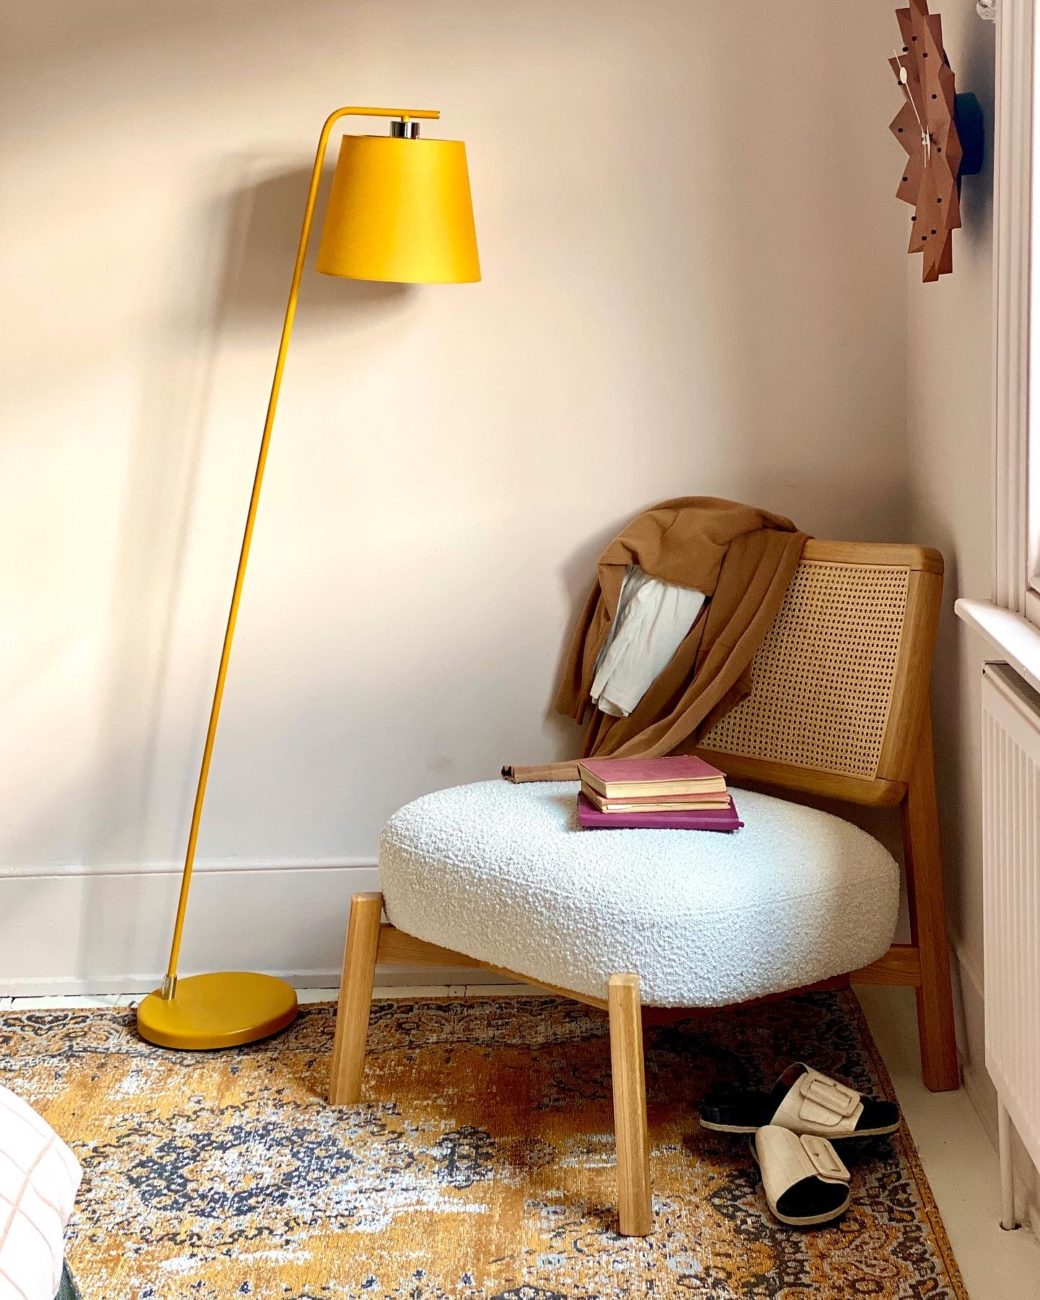 The new Anyday range from John Lewis includes this Harry floor lamp and dime boucle armchair